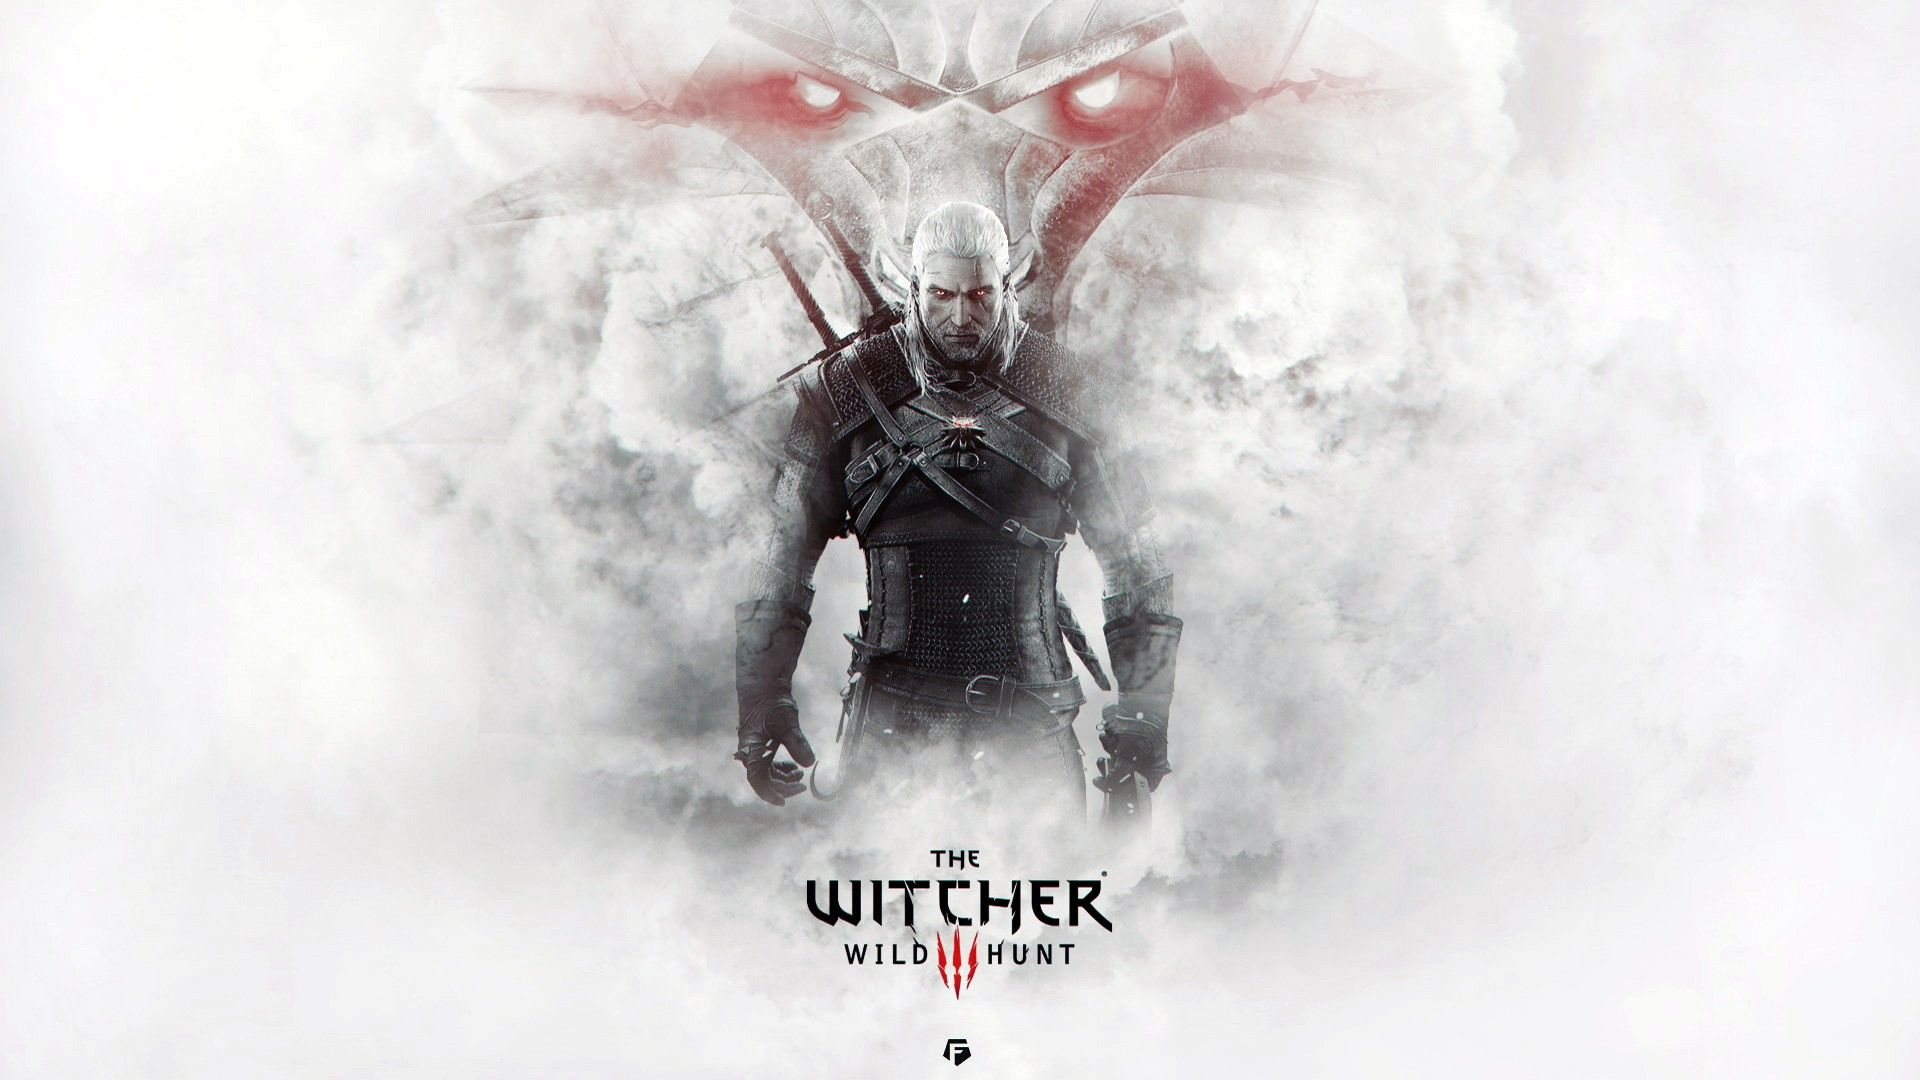 Witcher, PC Wallpaper